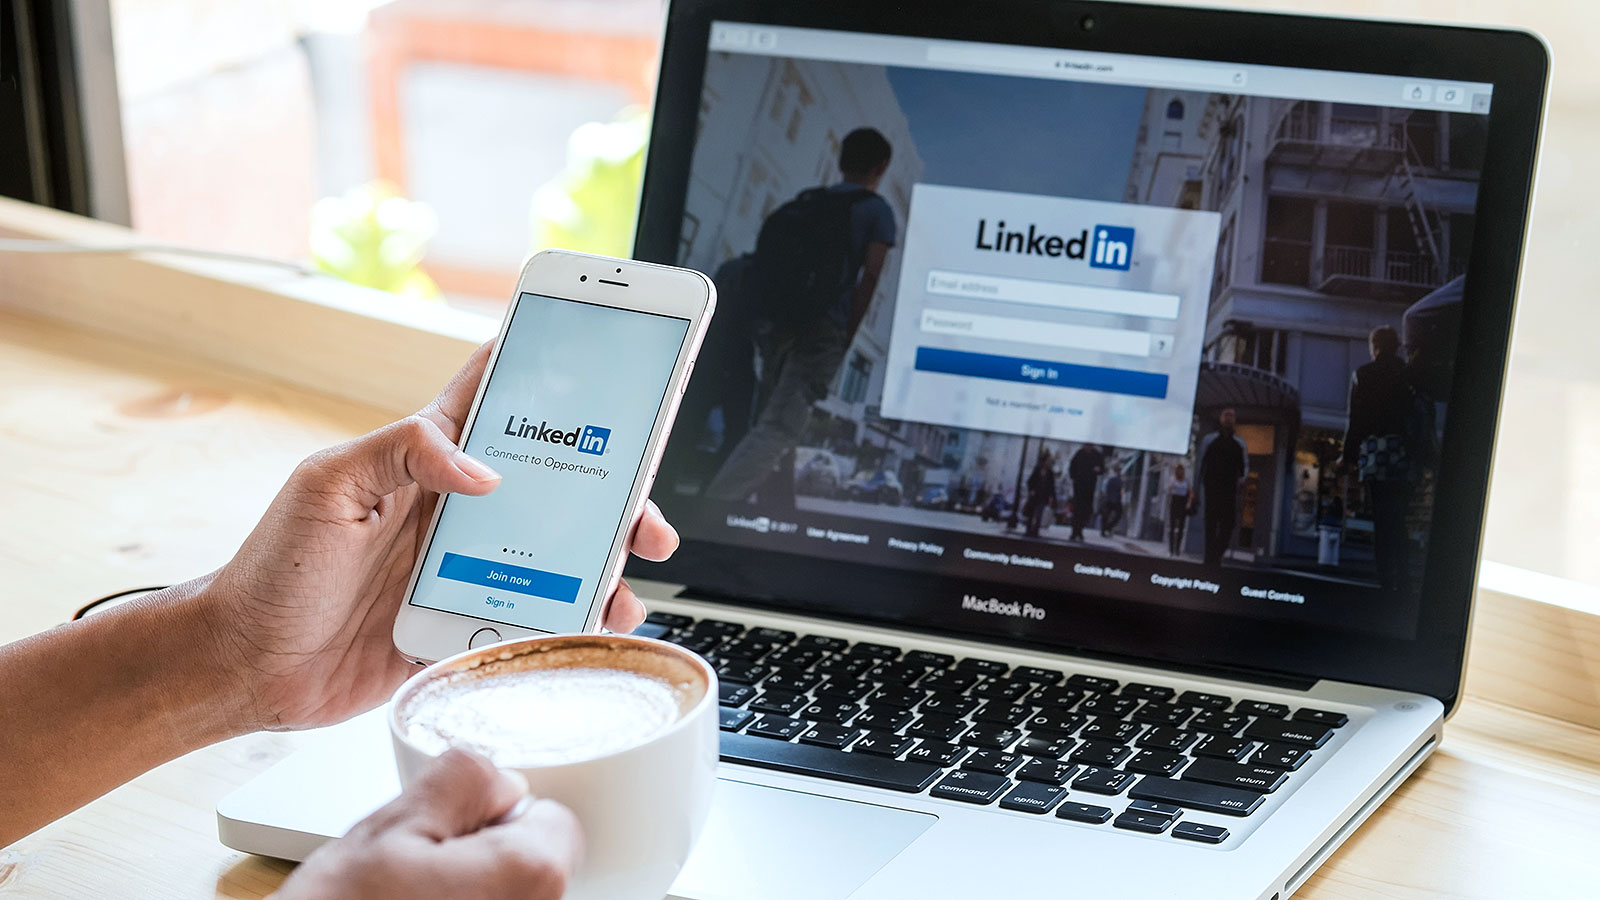 5 ways to improve your Linkedin profile in 10 minutes or less